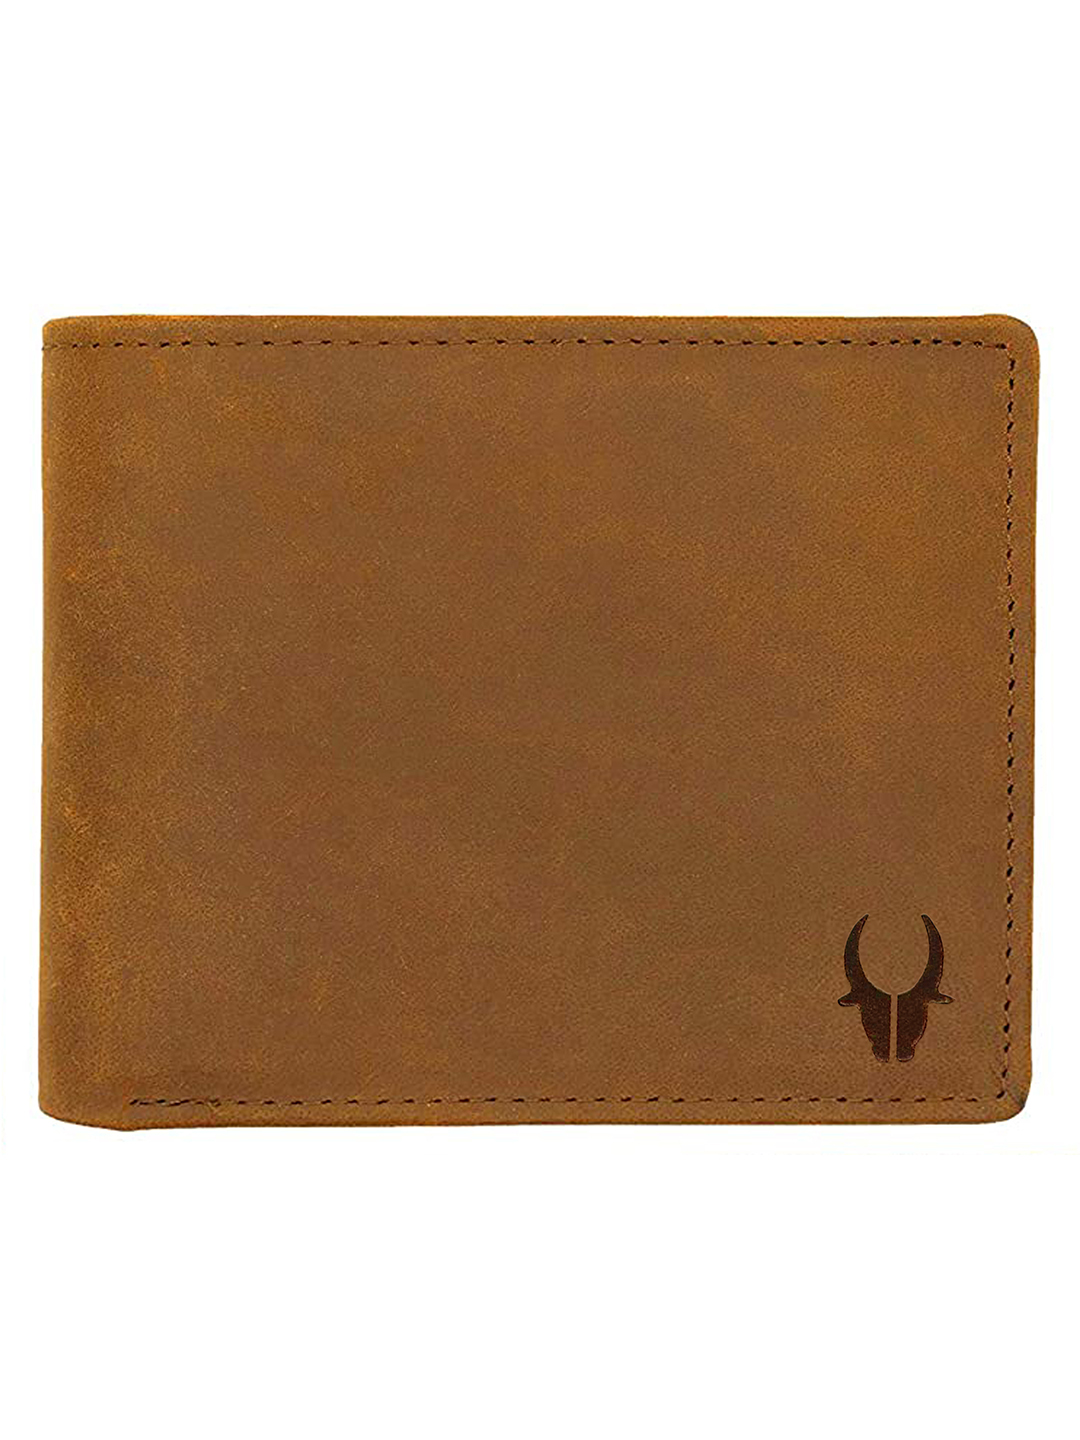 WildHorn | WildHorn Engraved Personalized Tan Leather Wallet for Men